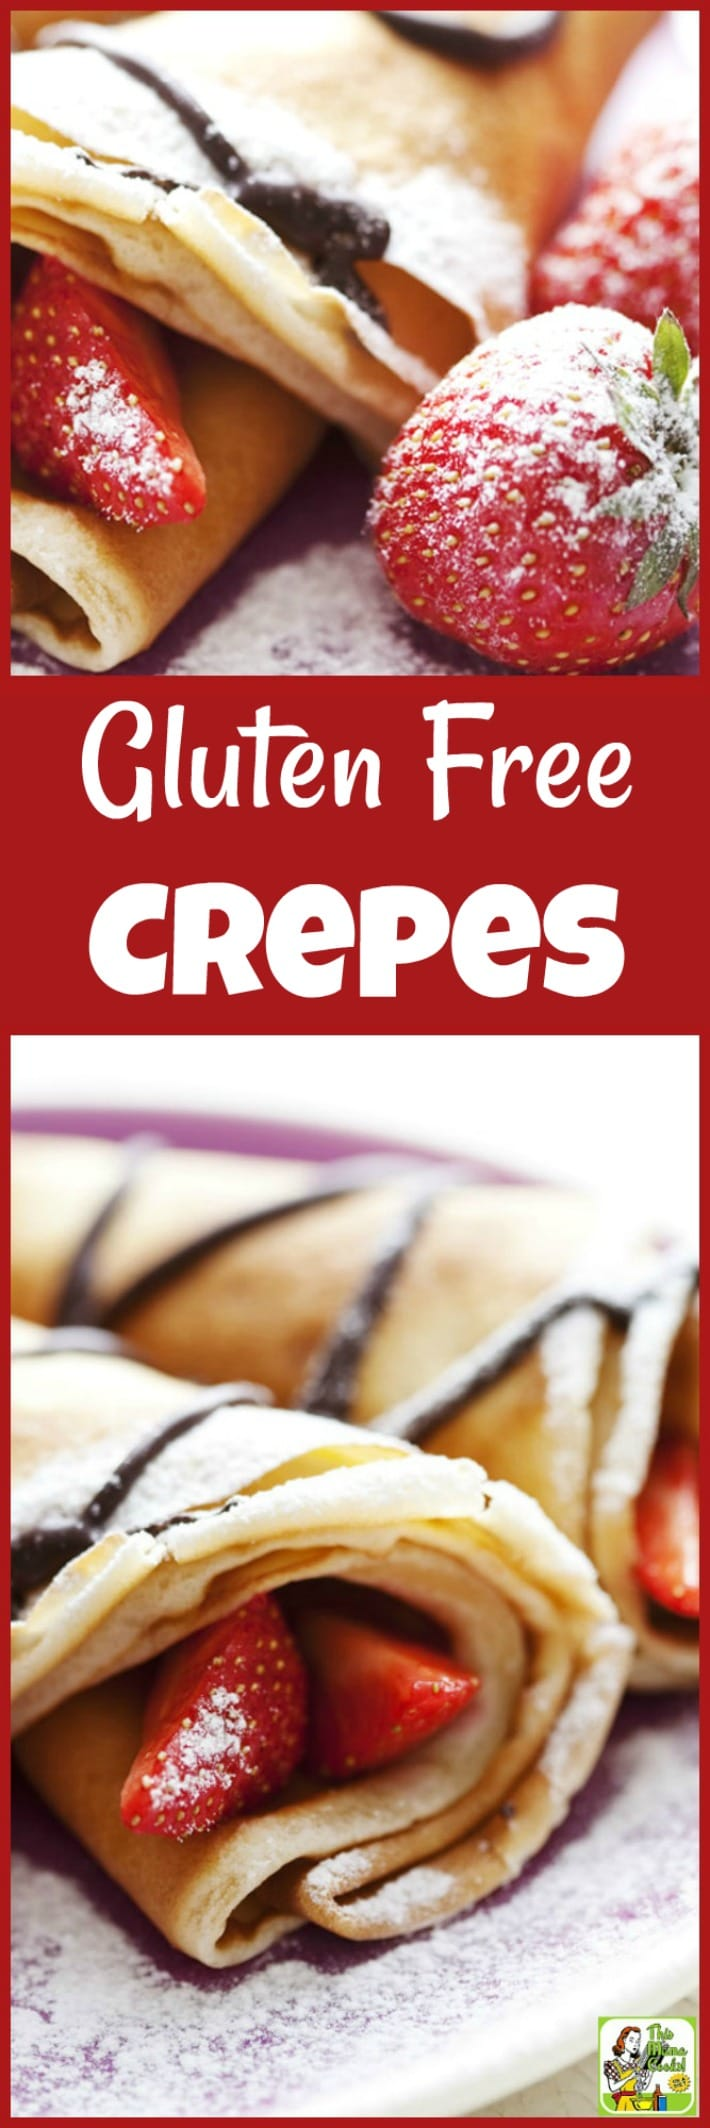 Serve Gluten Free Crepes for Valentine's Day,  Pancake Tuesday or Mother's Day. It's also a paleo crepe recipe with a few substitutions. #pancaketuesday #recipes #recipeoftheday #healthyrecipes #easyrecipe #easyrecipe #breakfast #brunch #dessert #dessertrecipes #crepes #pancakes #pancakerecipes #pancakesfromscratch #pancakeday #crepesrecipe